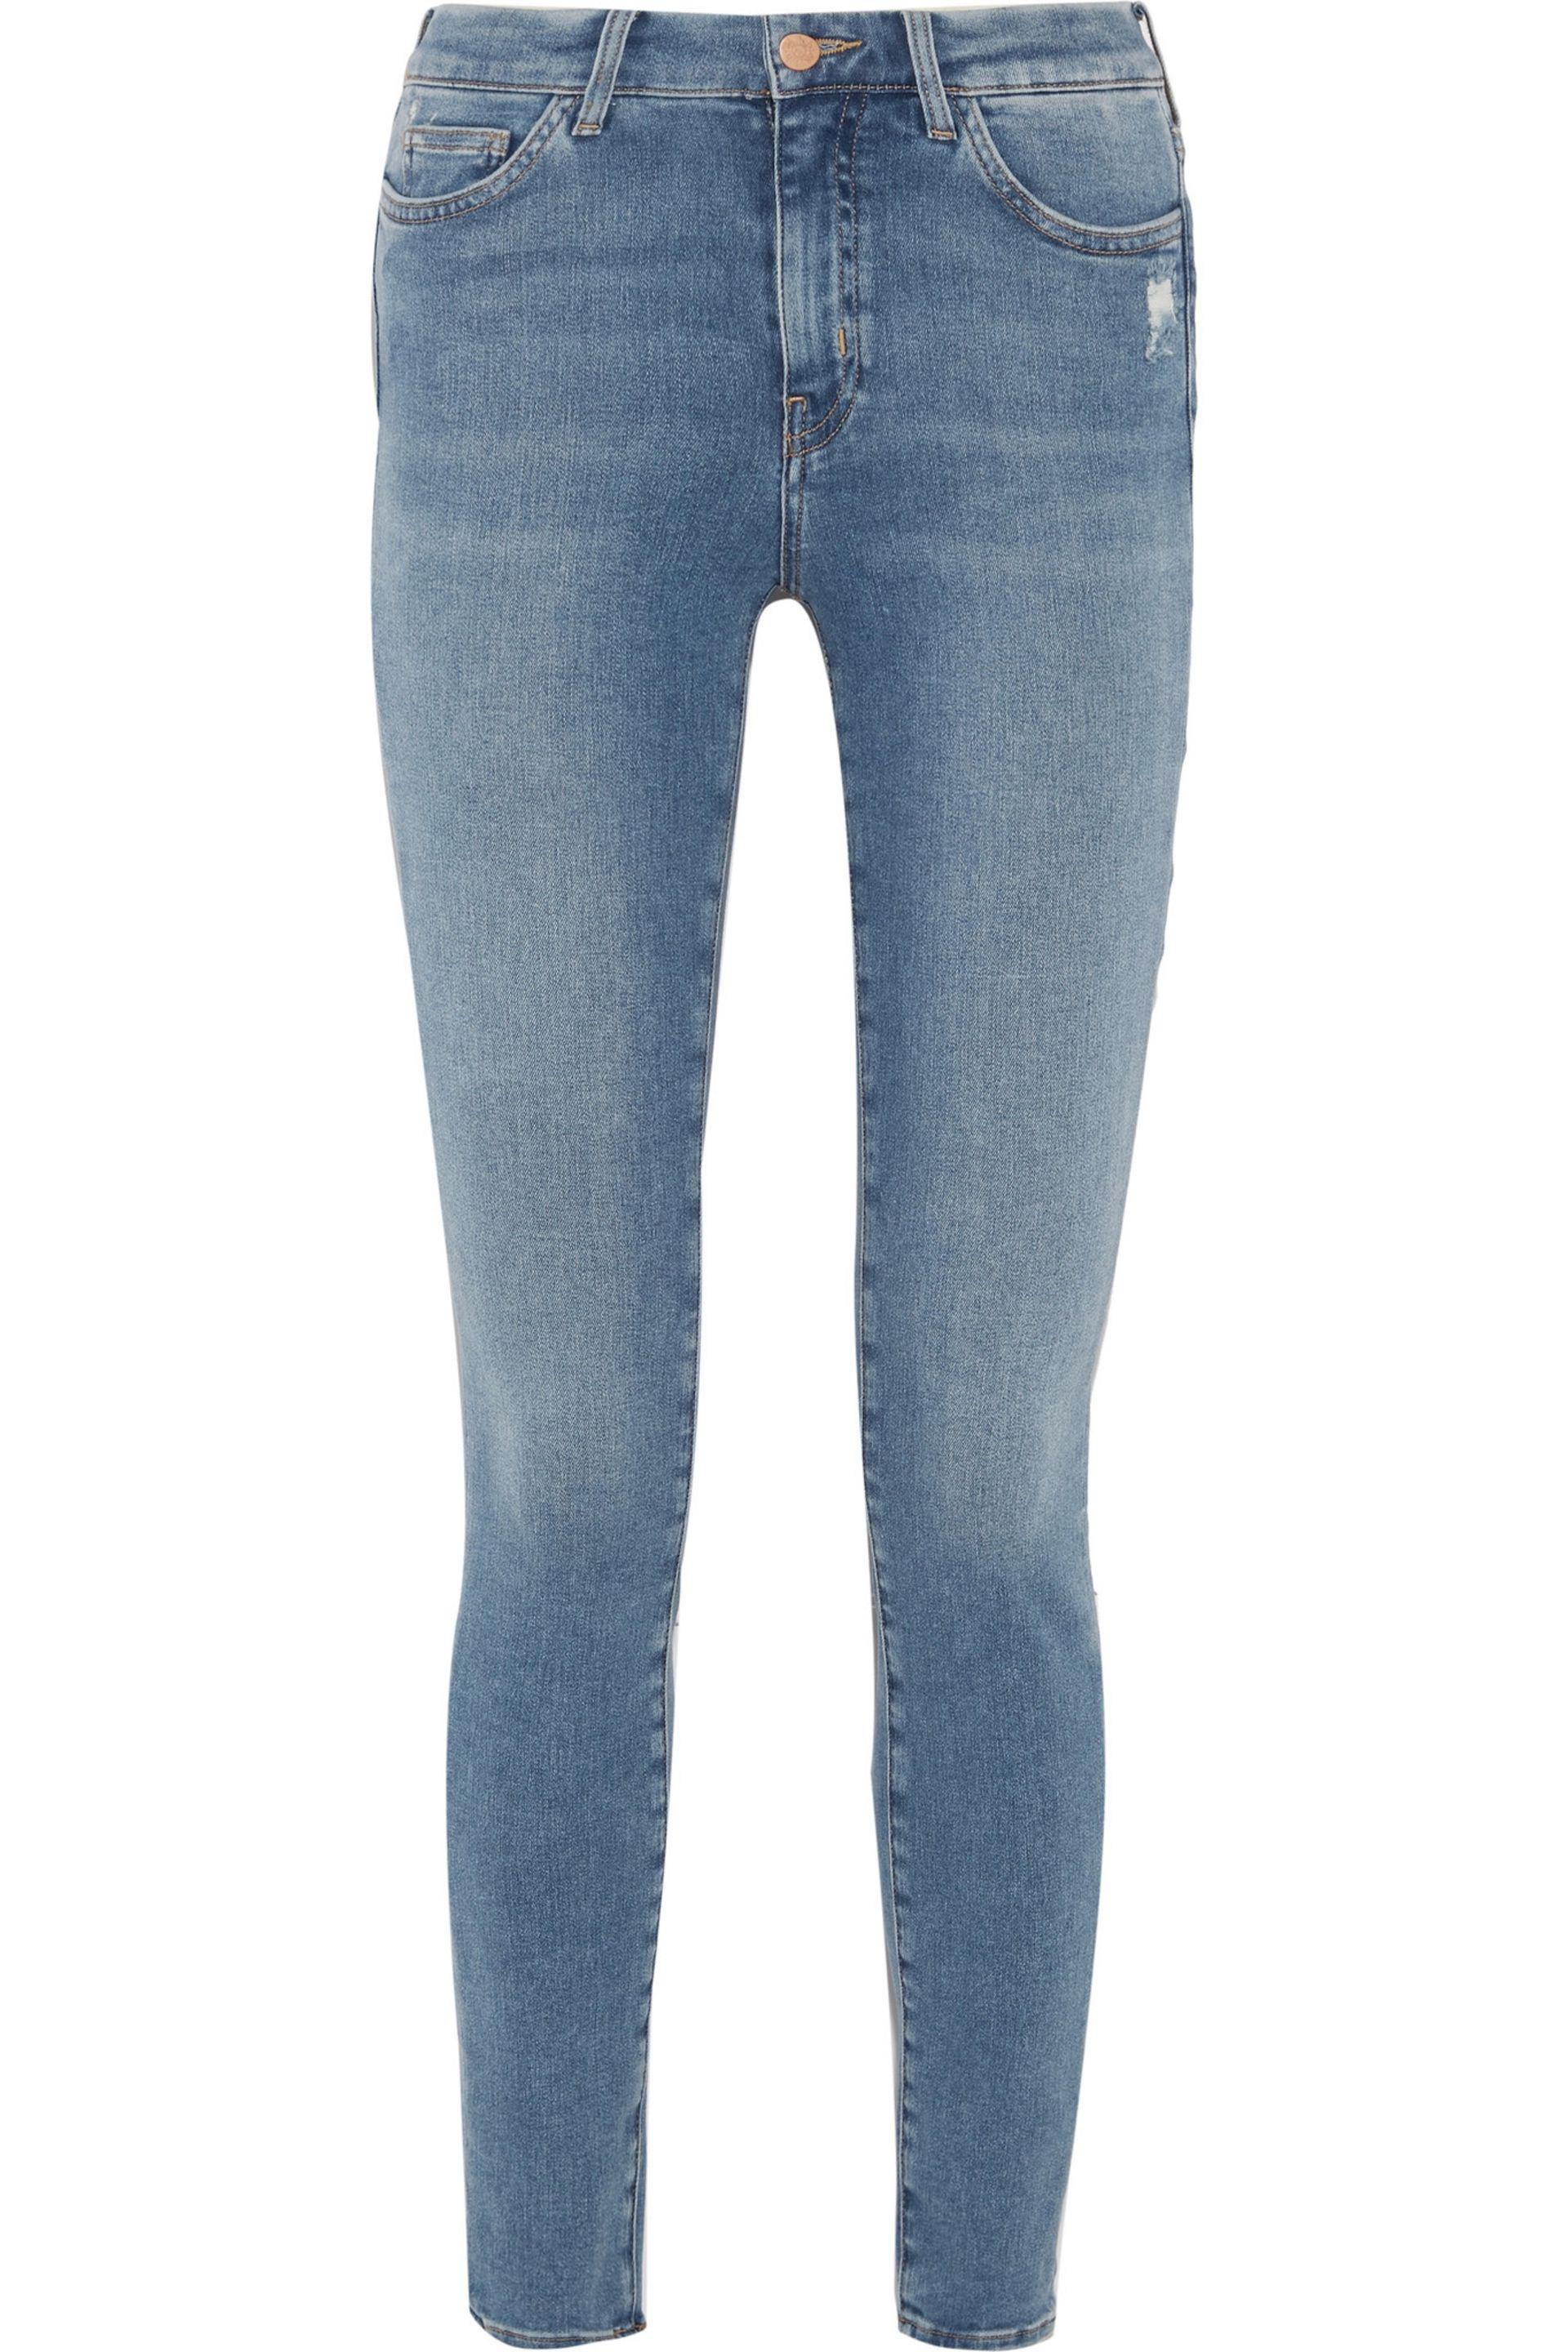 M.i.h Jeans Woman Mid-rise Flared Jeans Mid Denim Size 24 Mih Jeans Get Authentic Online Cost Online Limited Edition Cheap Price Fashionable 7eMmH